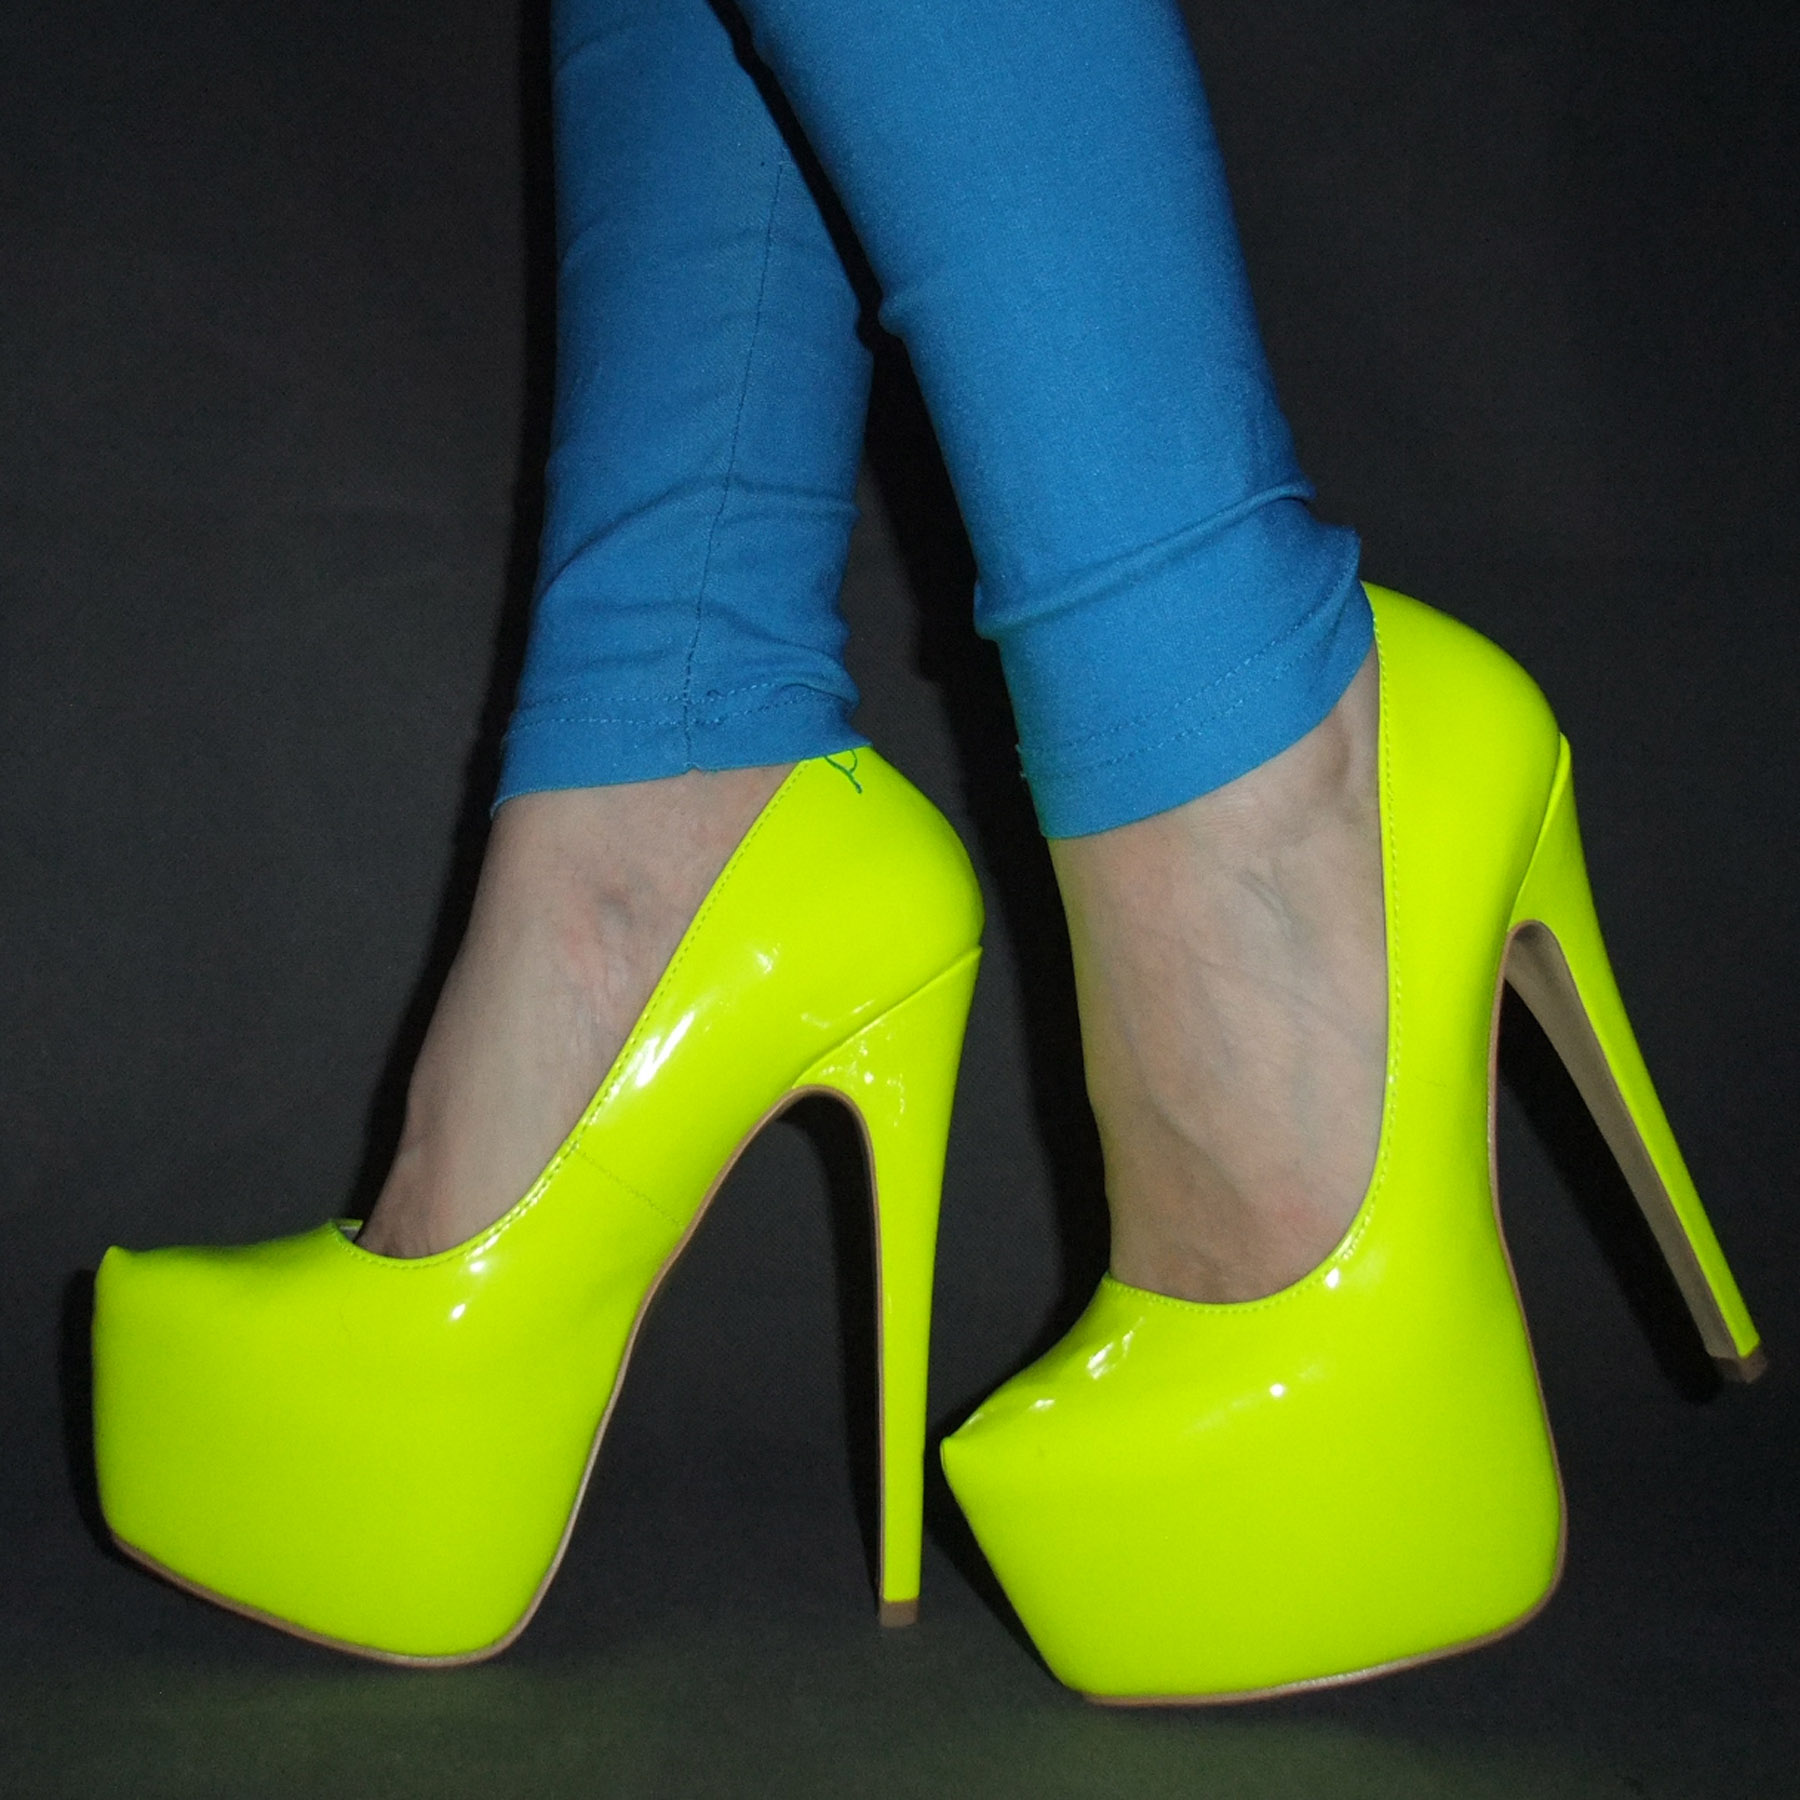 New arrived 2013 Free shipping Women Hot Neon color sexy 16CM ultra High heel Pumps/Pink yellow platform party shoes Size 35 41-inPumps from Shoes on Aliexpress.com